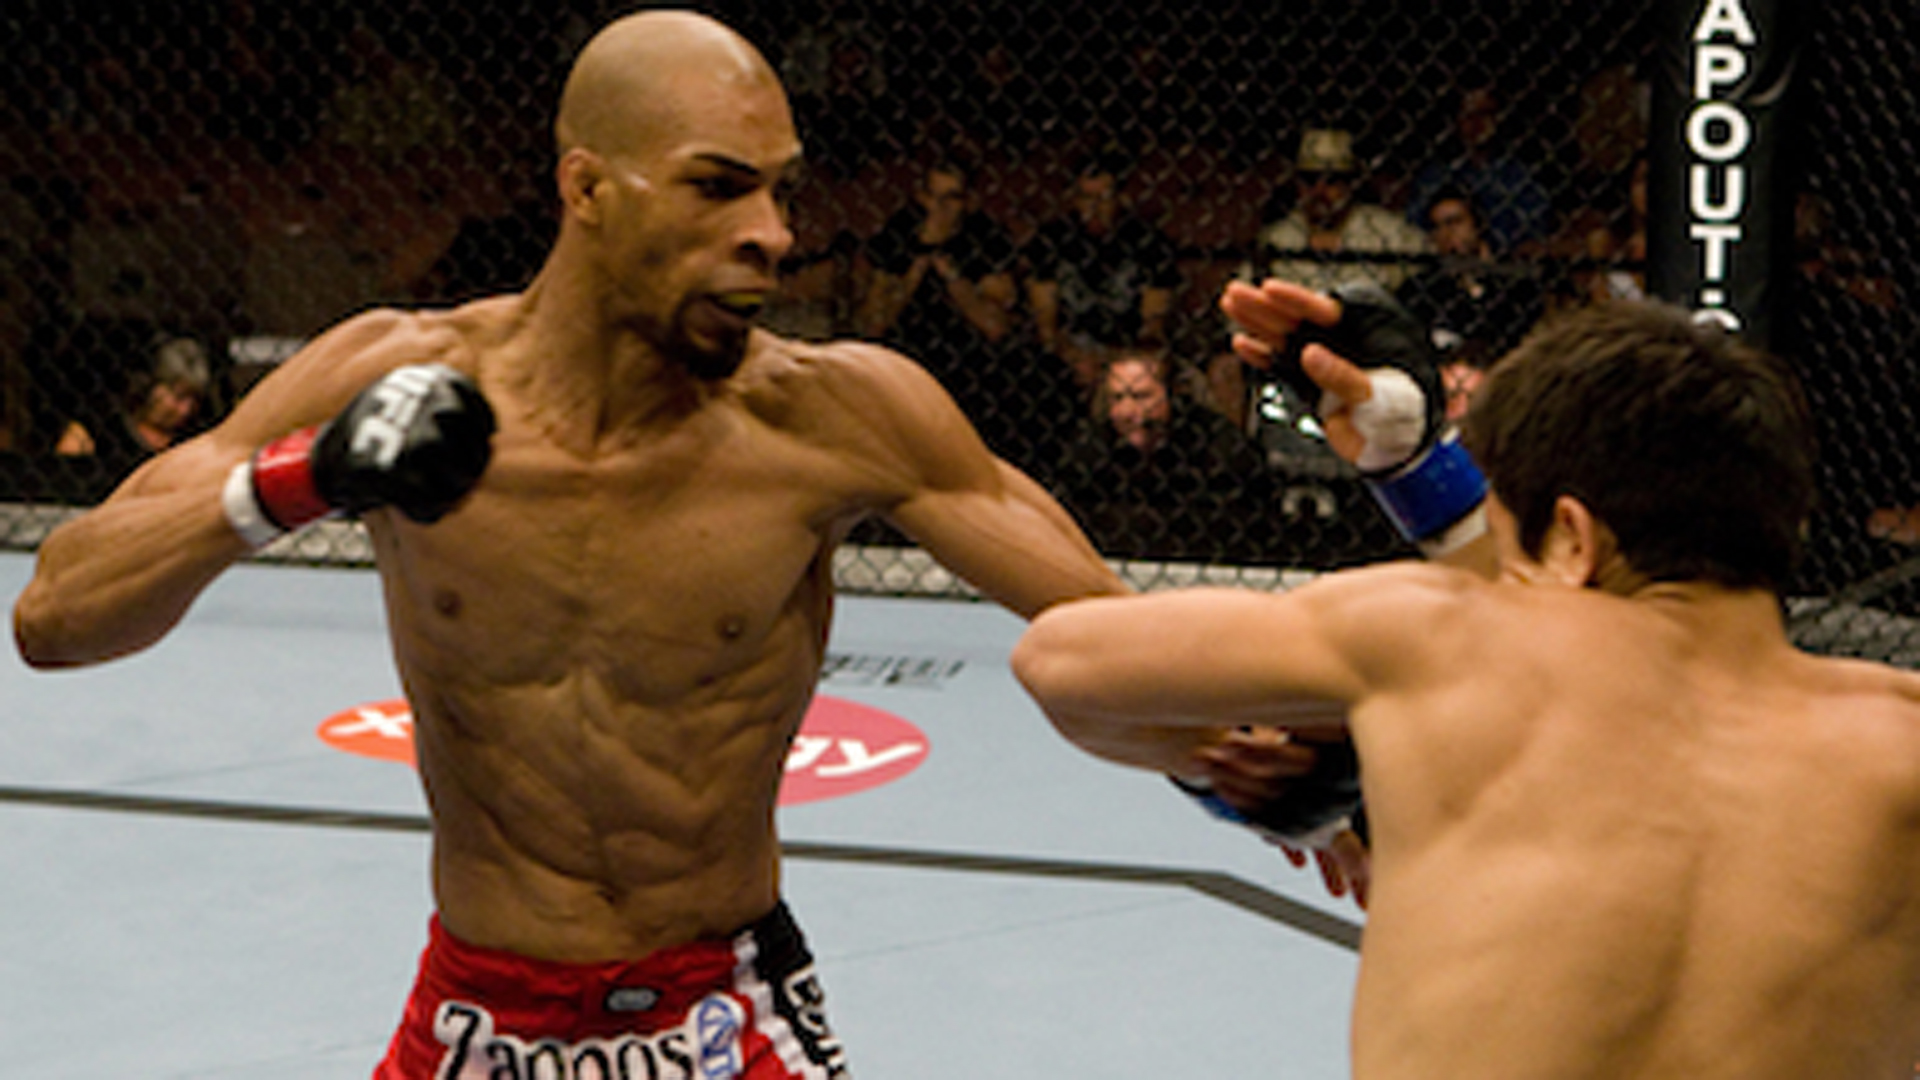 Wife of former ufc fighter corey hill denies reports of his death